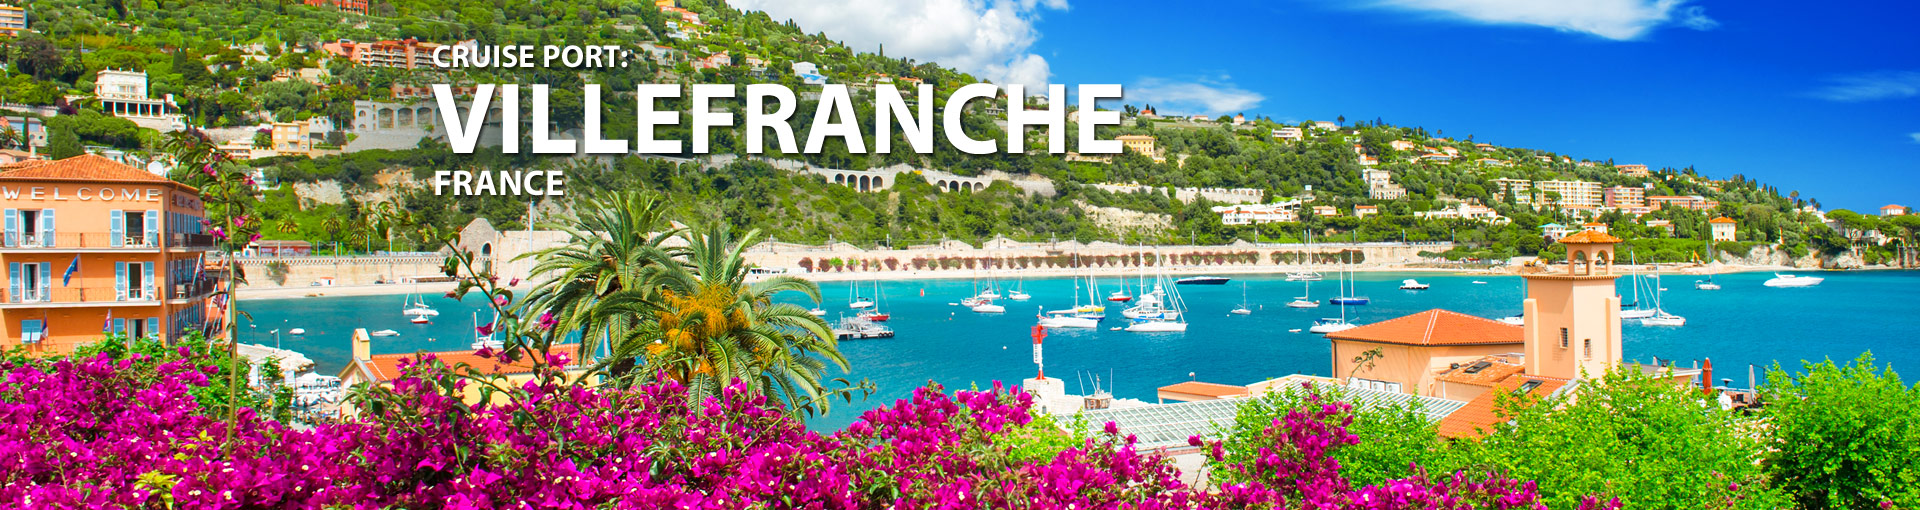 Cruises from Villefranche, France